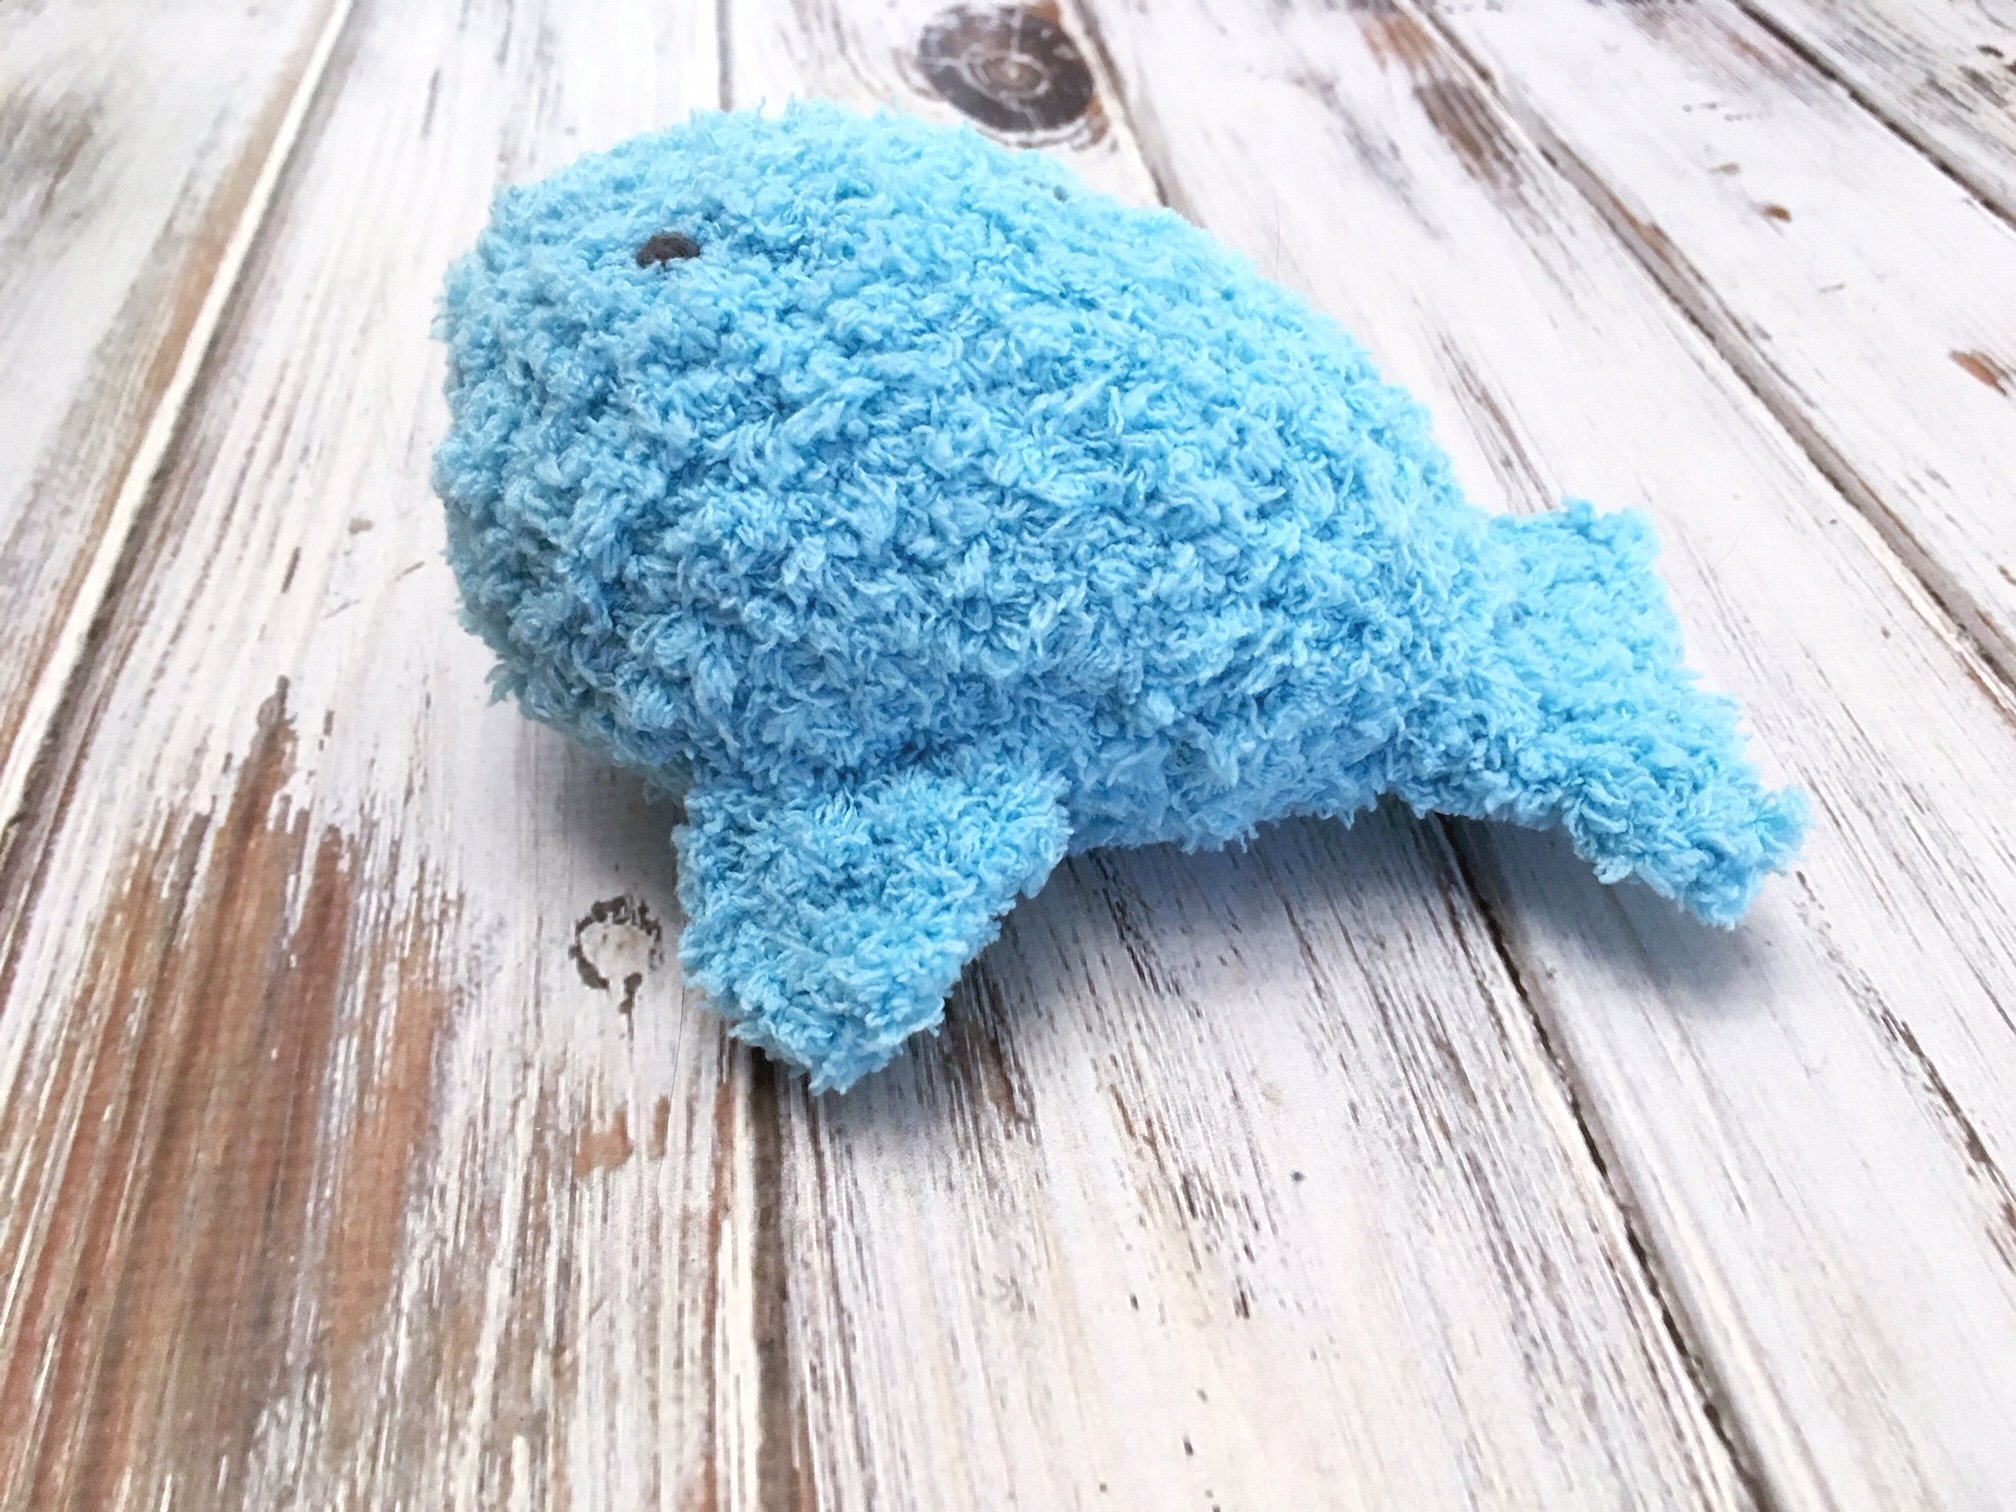 Learn to crochet this adorable stuffed whale with this free crochet pattern for the Pipsqueak Whale.